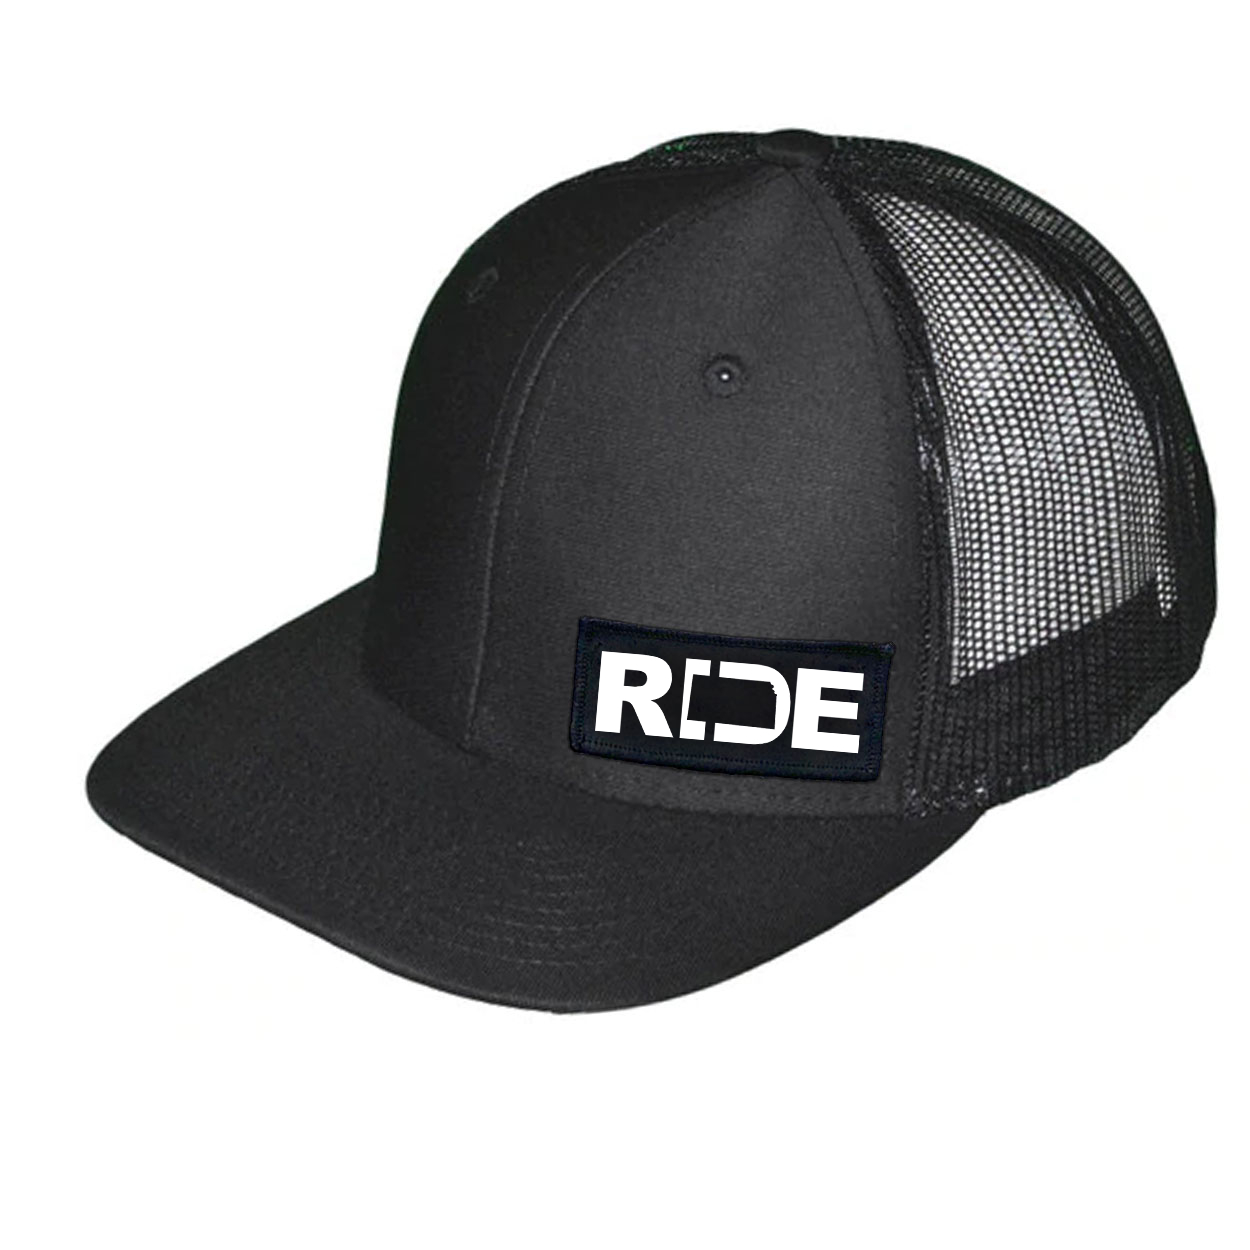 Ride Kansas Night Out Woven Patch Snapback Trucker Hat Black (White Logo)